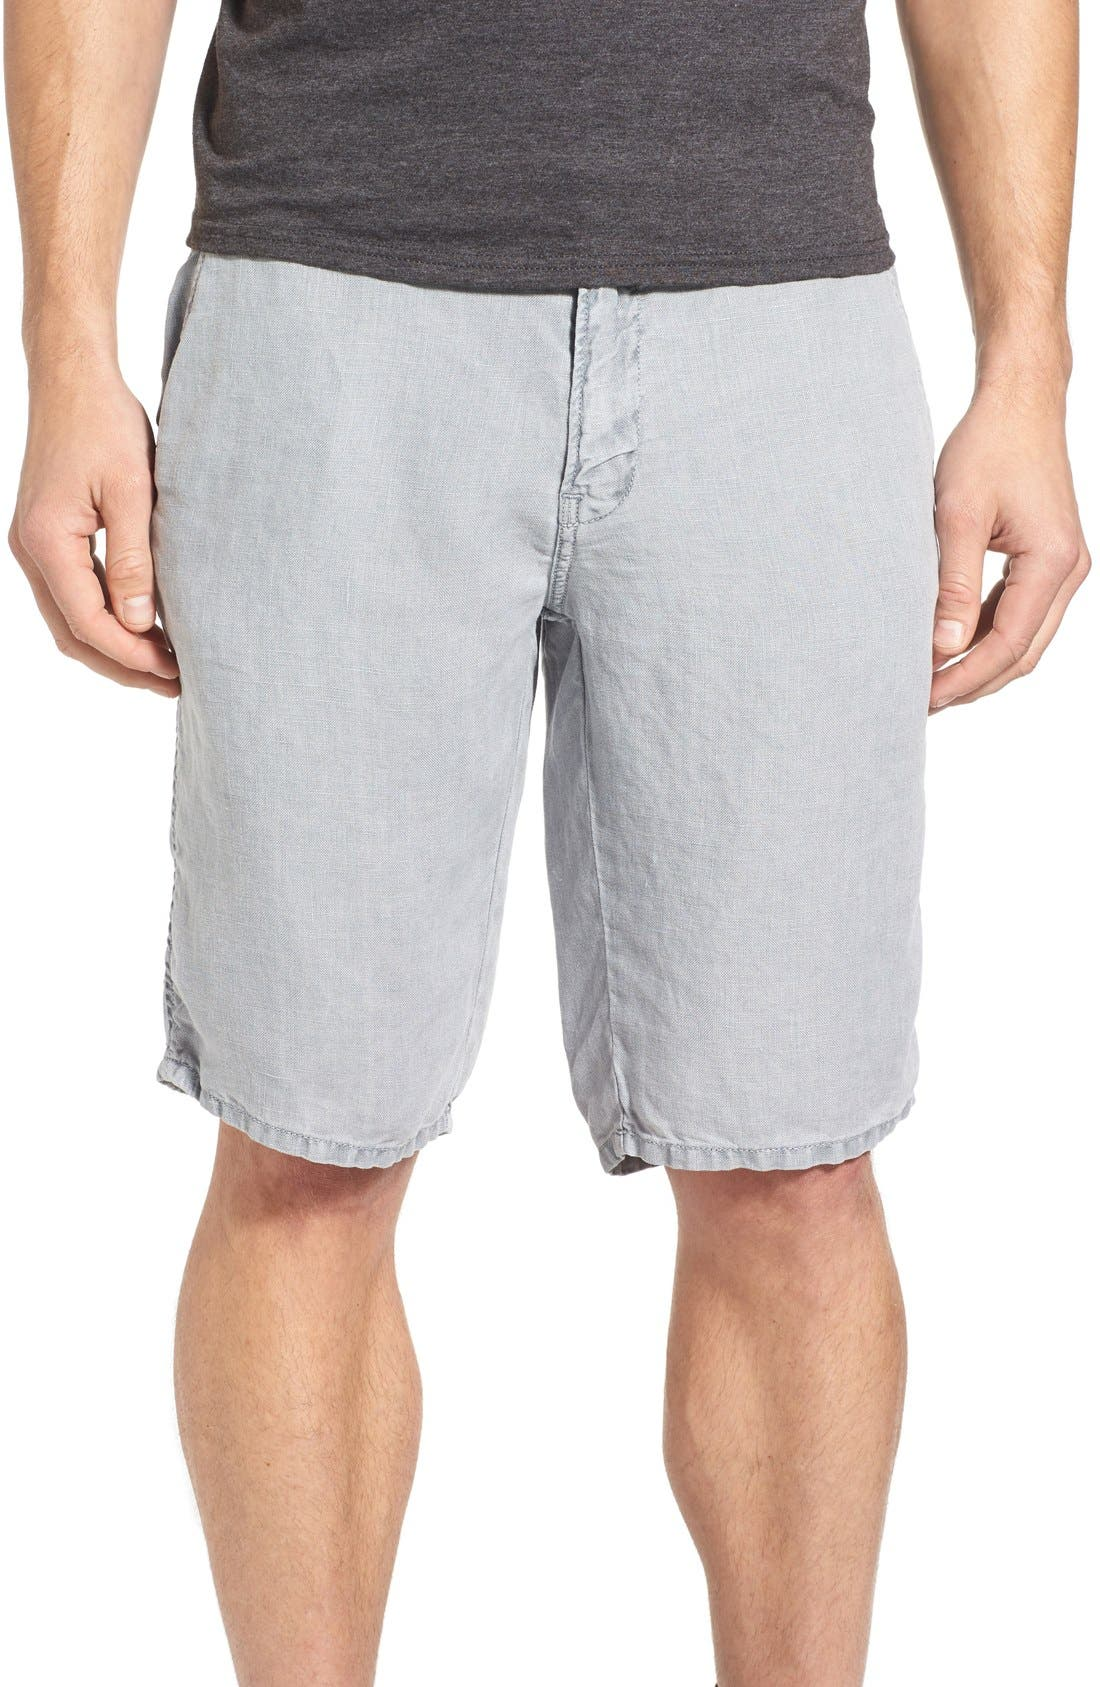 'Havana' Linen Shorts,                             Main thumbnail 1, color,                             Lite Grey